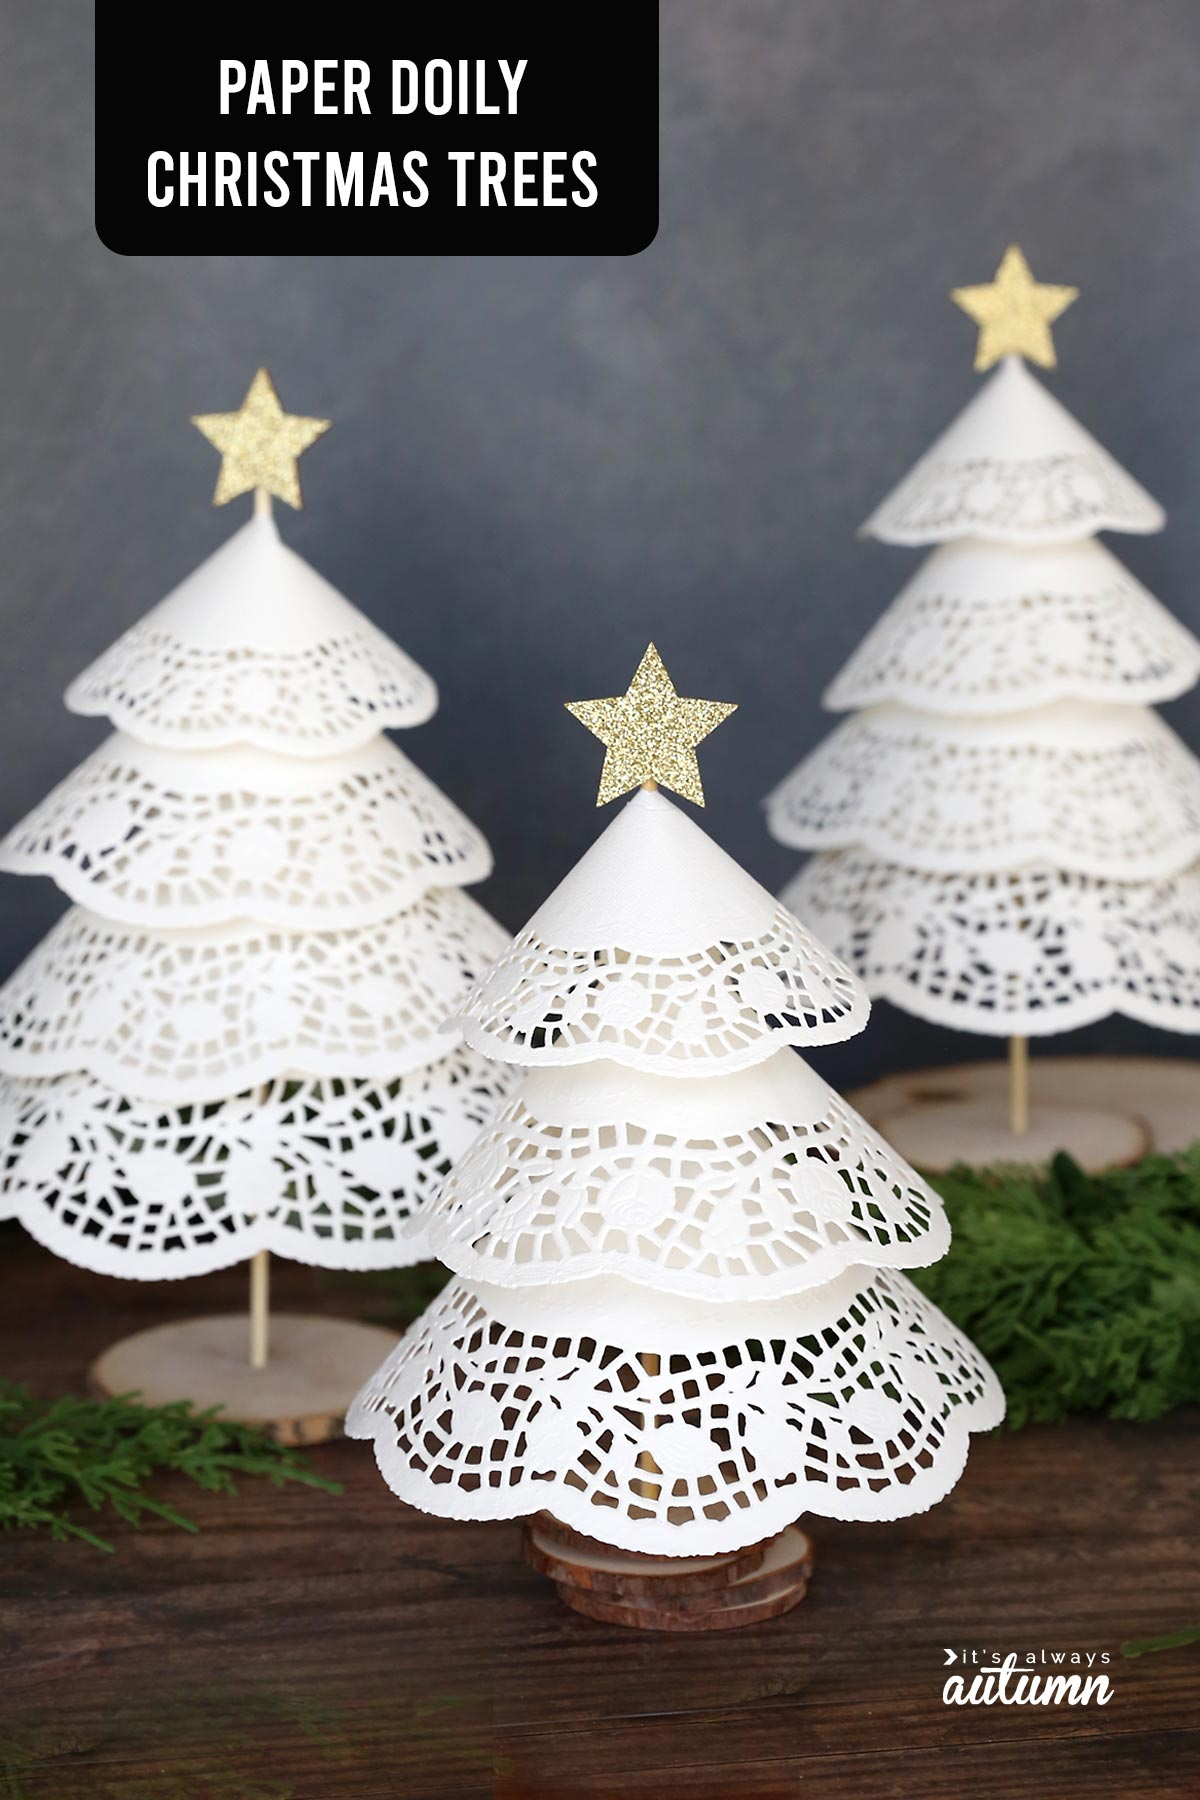 Three white Christmas trees made from paper doilies